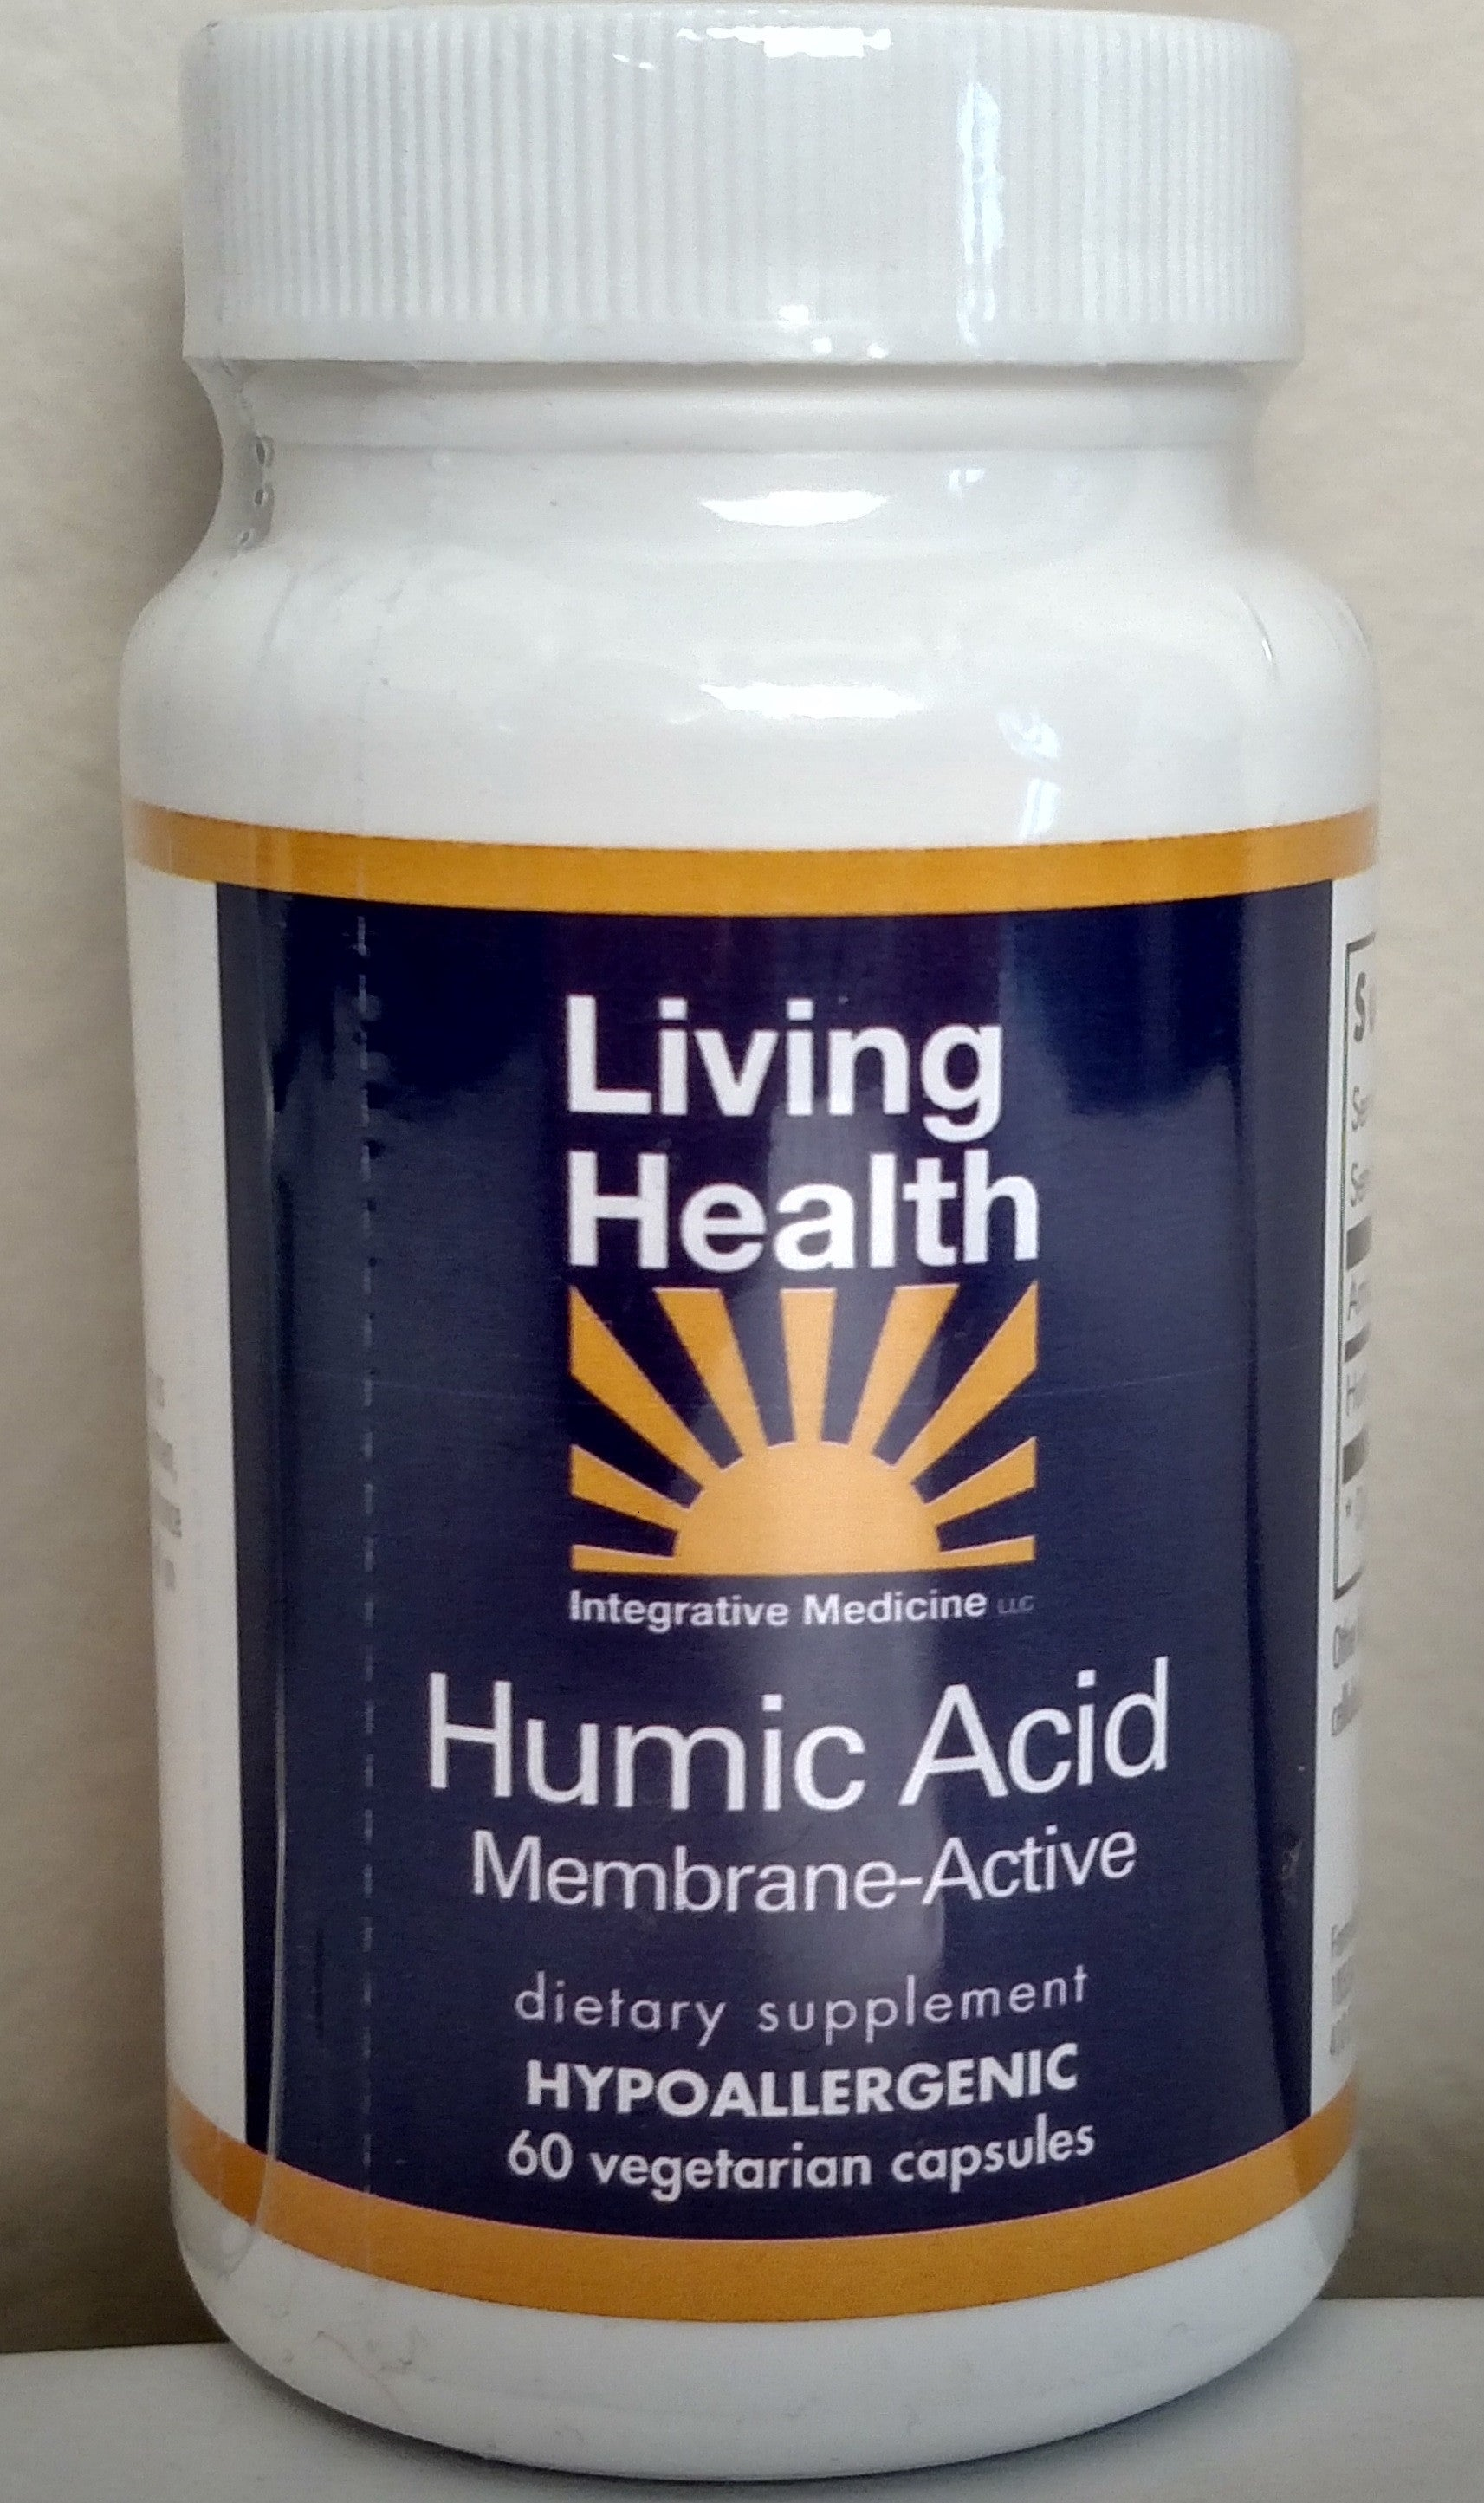 Humic Acid - Living Health Market